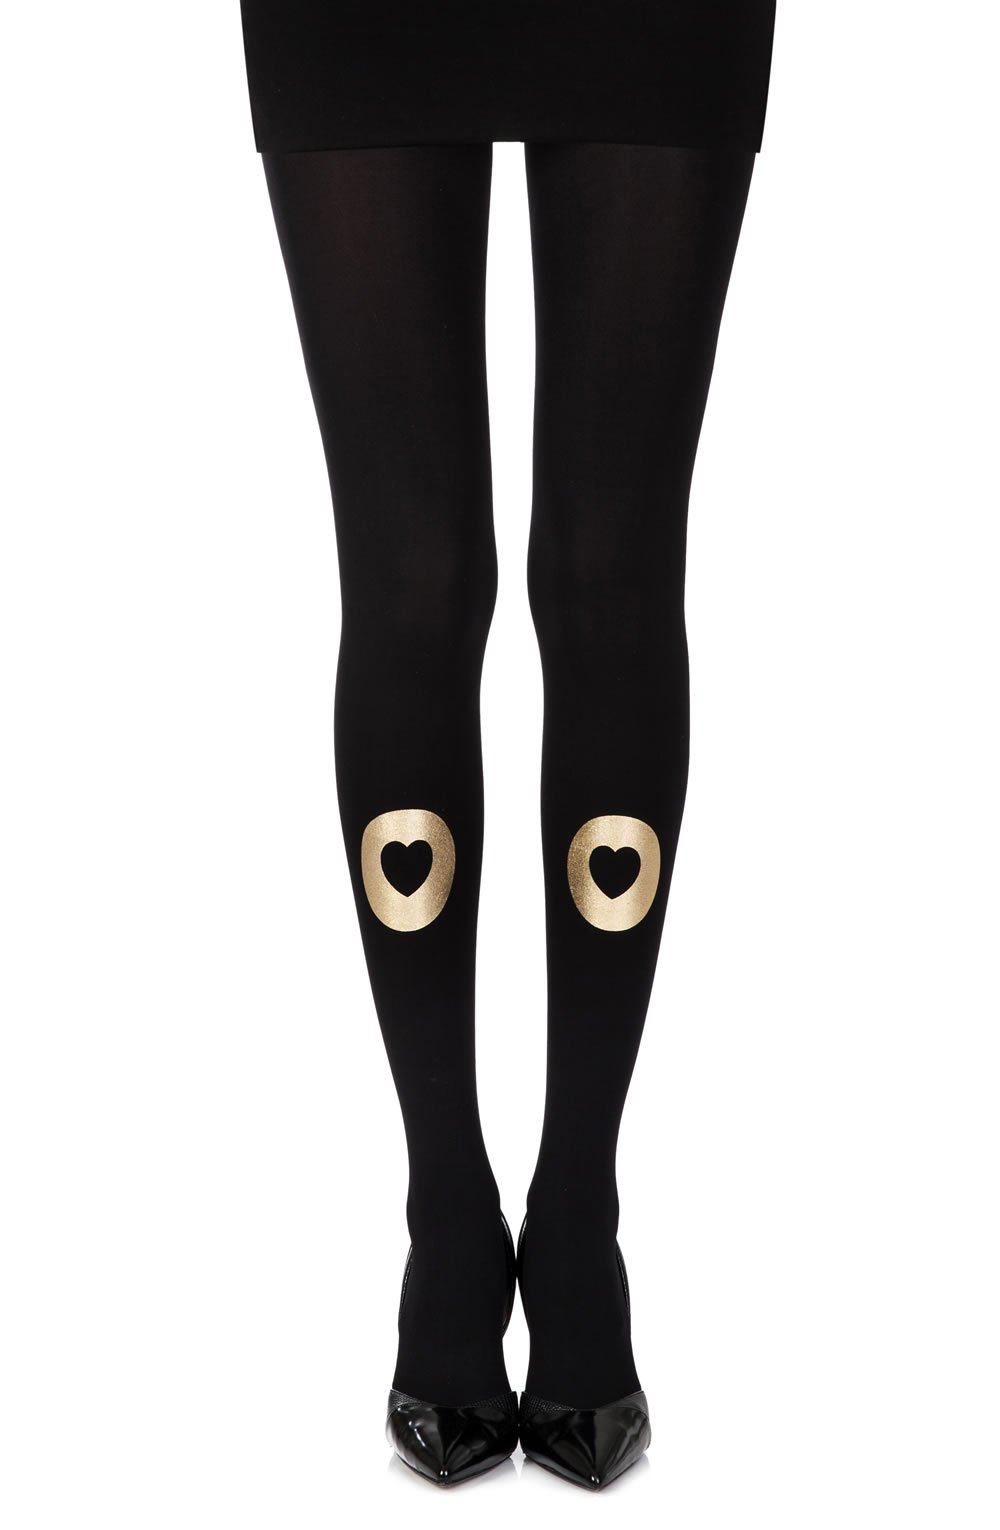 Zohara Into My Heart Black Print Tights - Lingerie Best